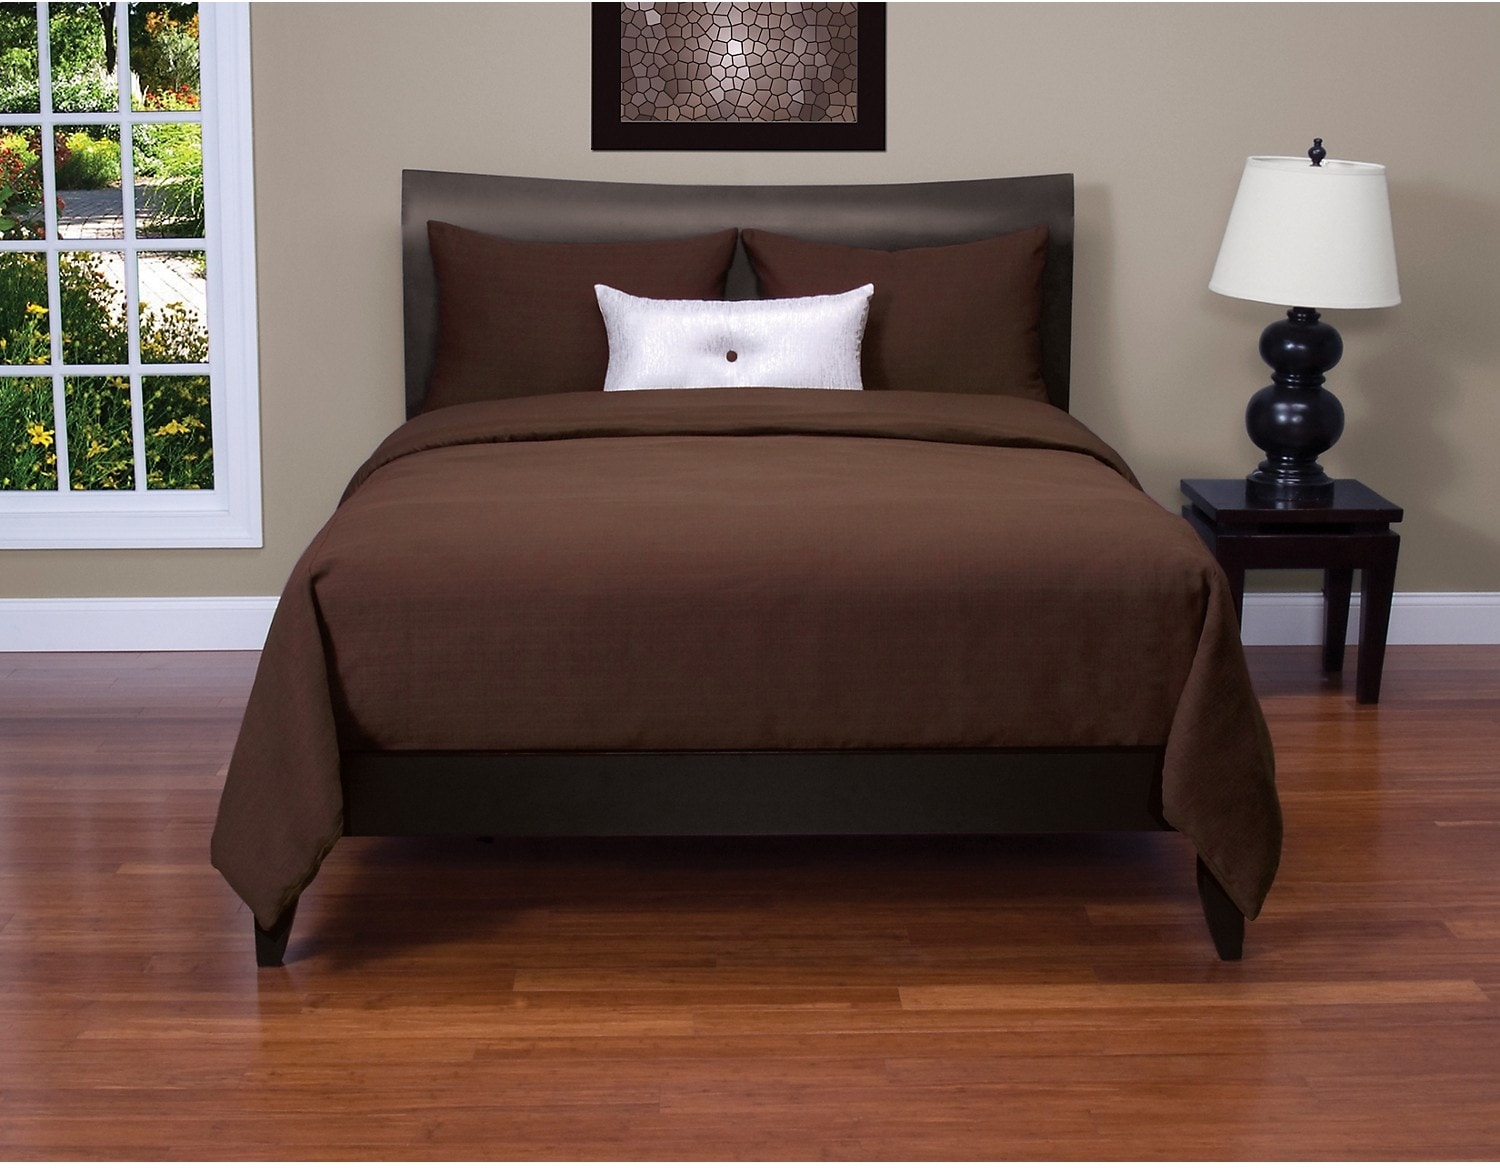 Accent and Occasional Furniture - Belfast 4 Piece Queen Duvet Cover Set - Chocolate